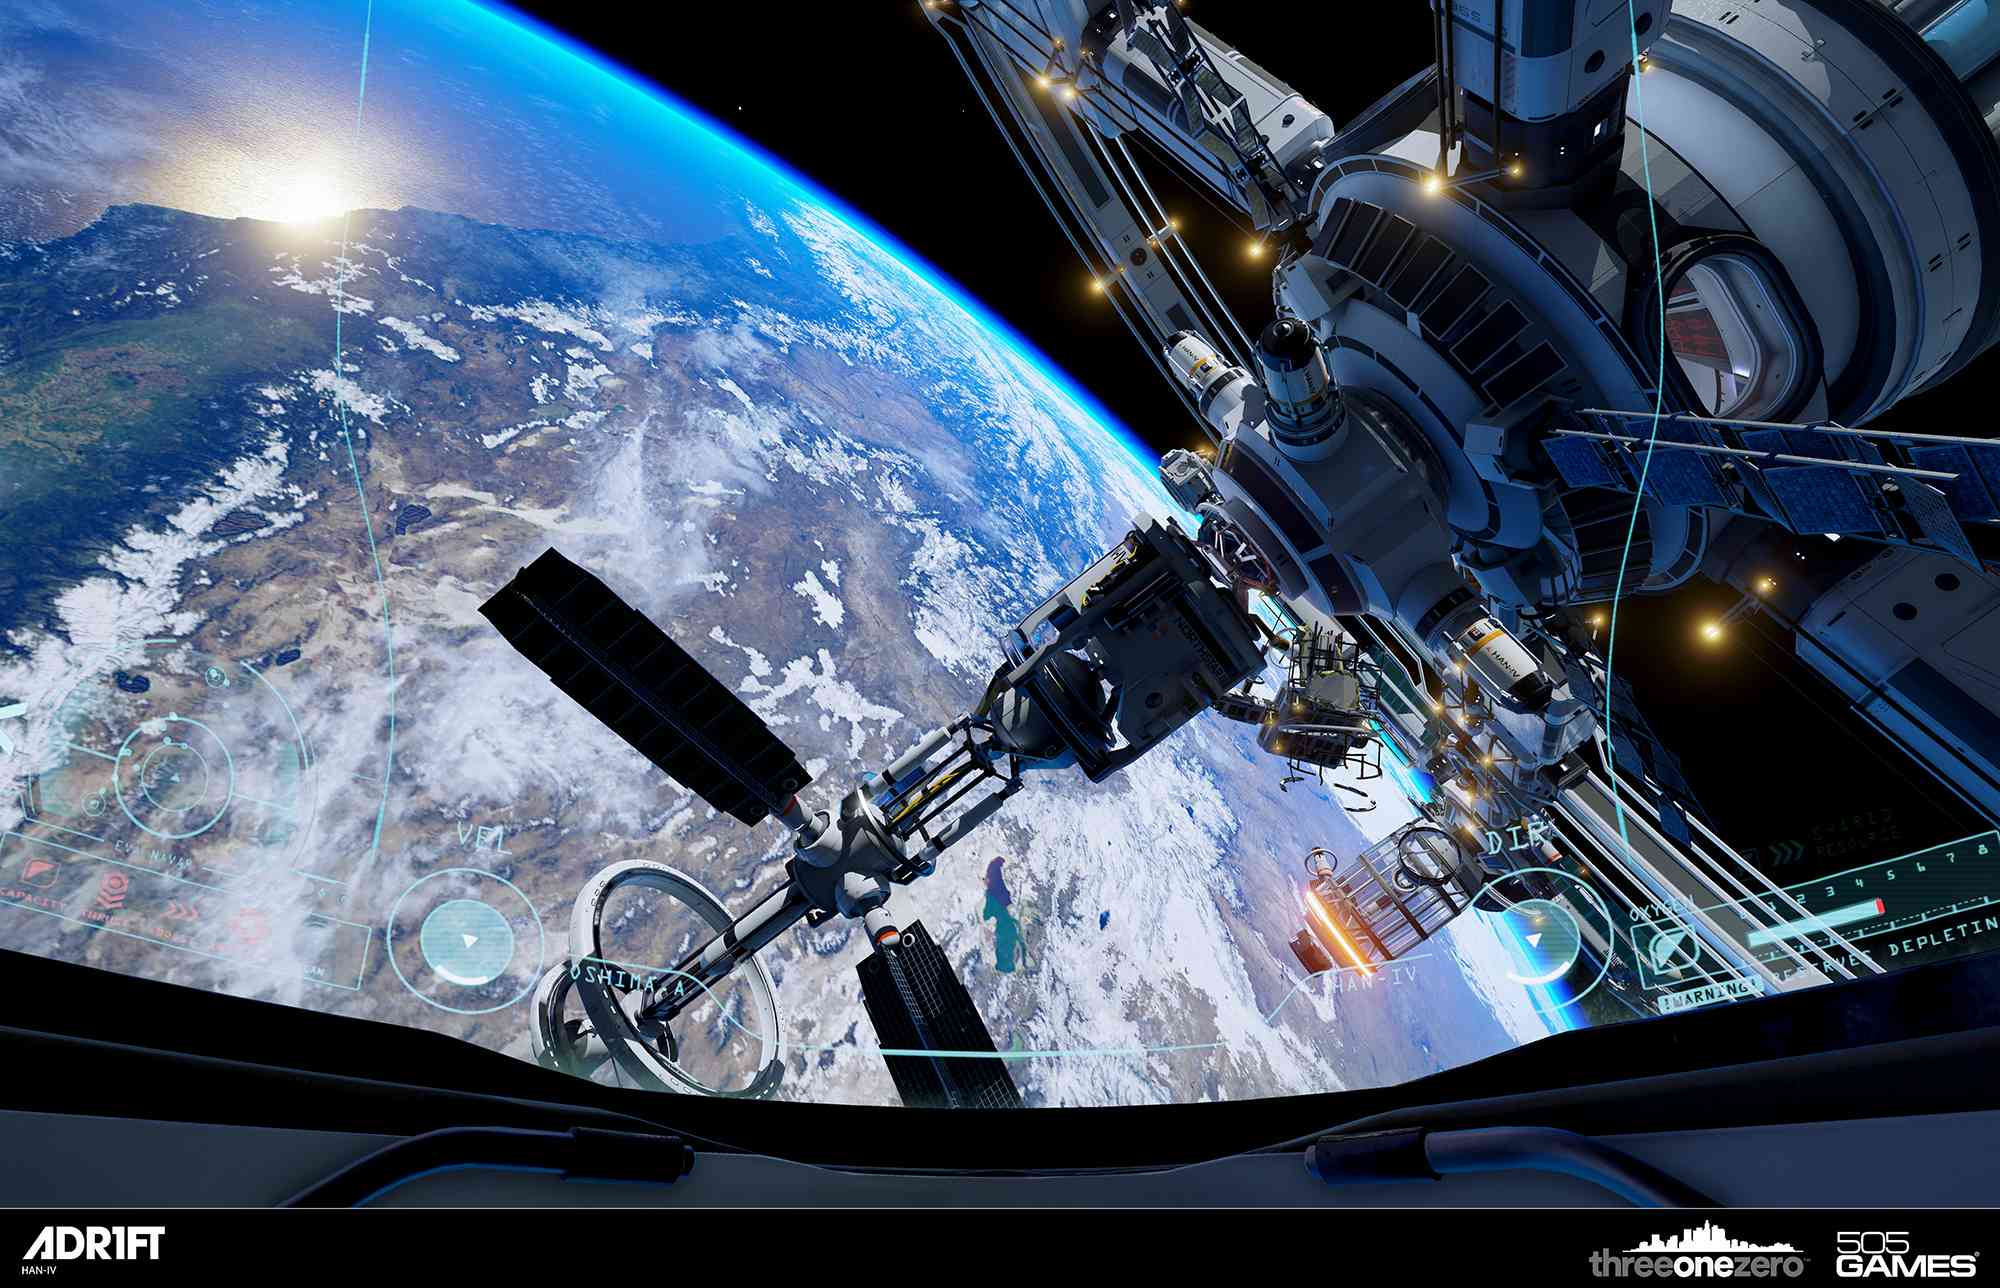 Adr1ft' Is the First Real VR Game - VICE